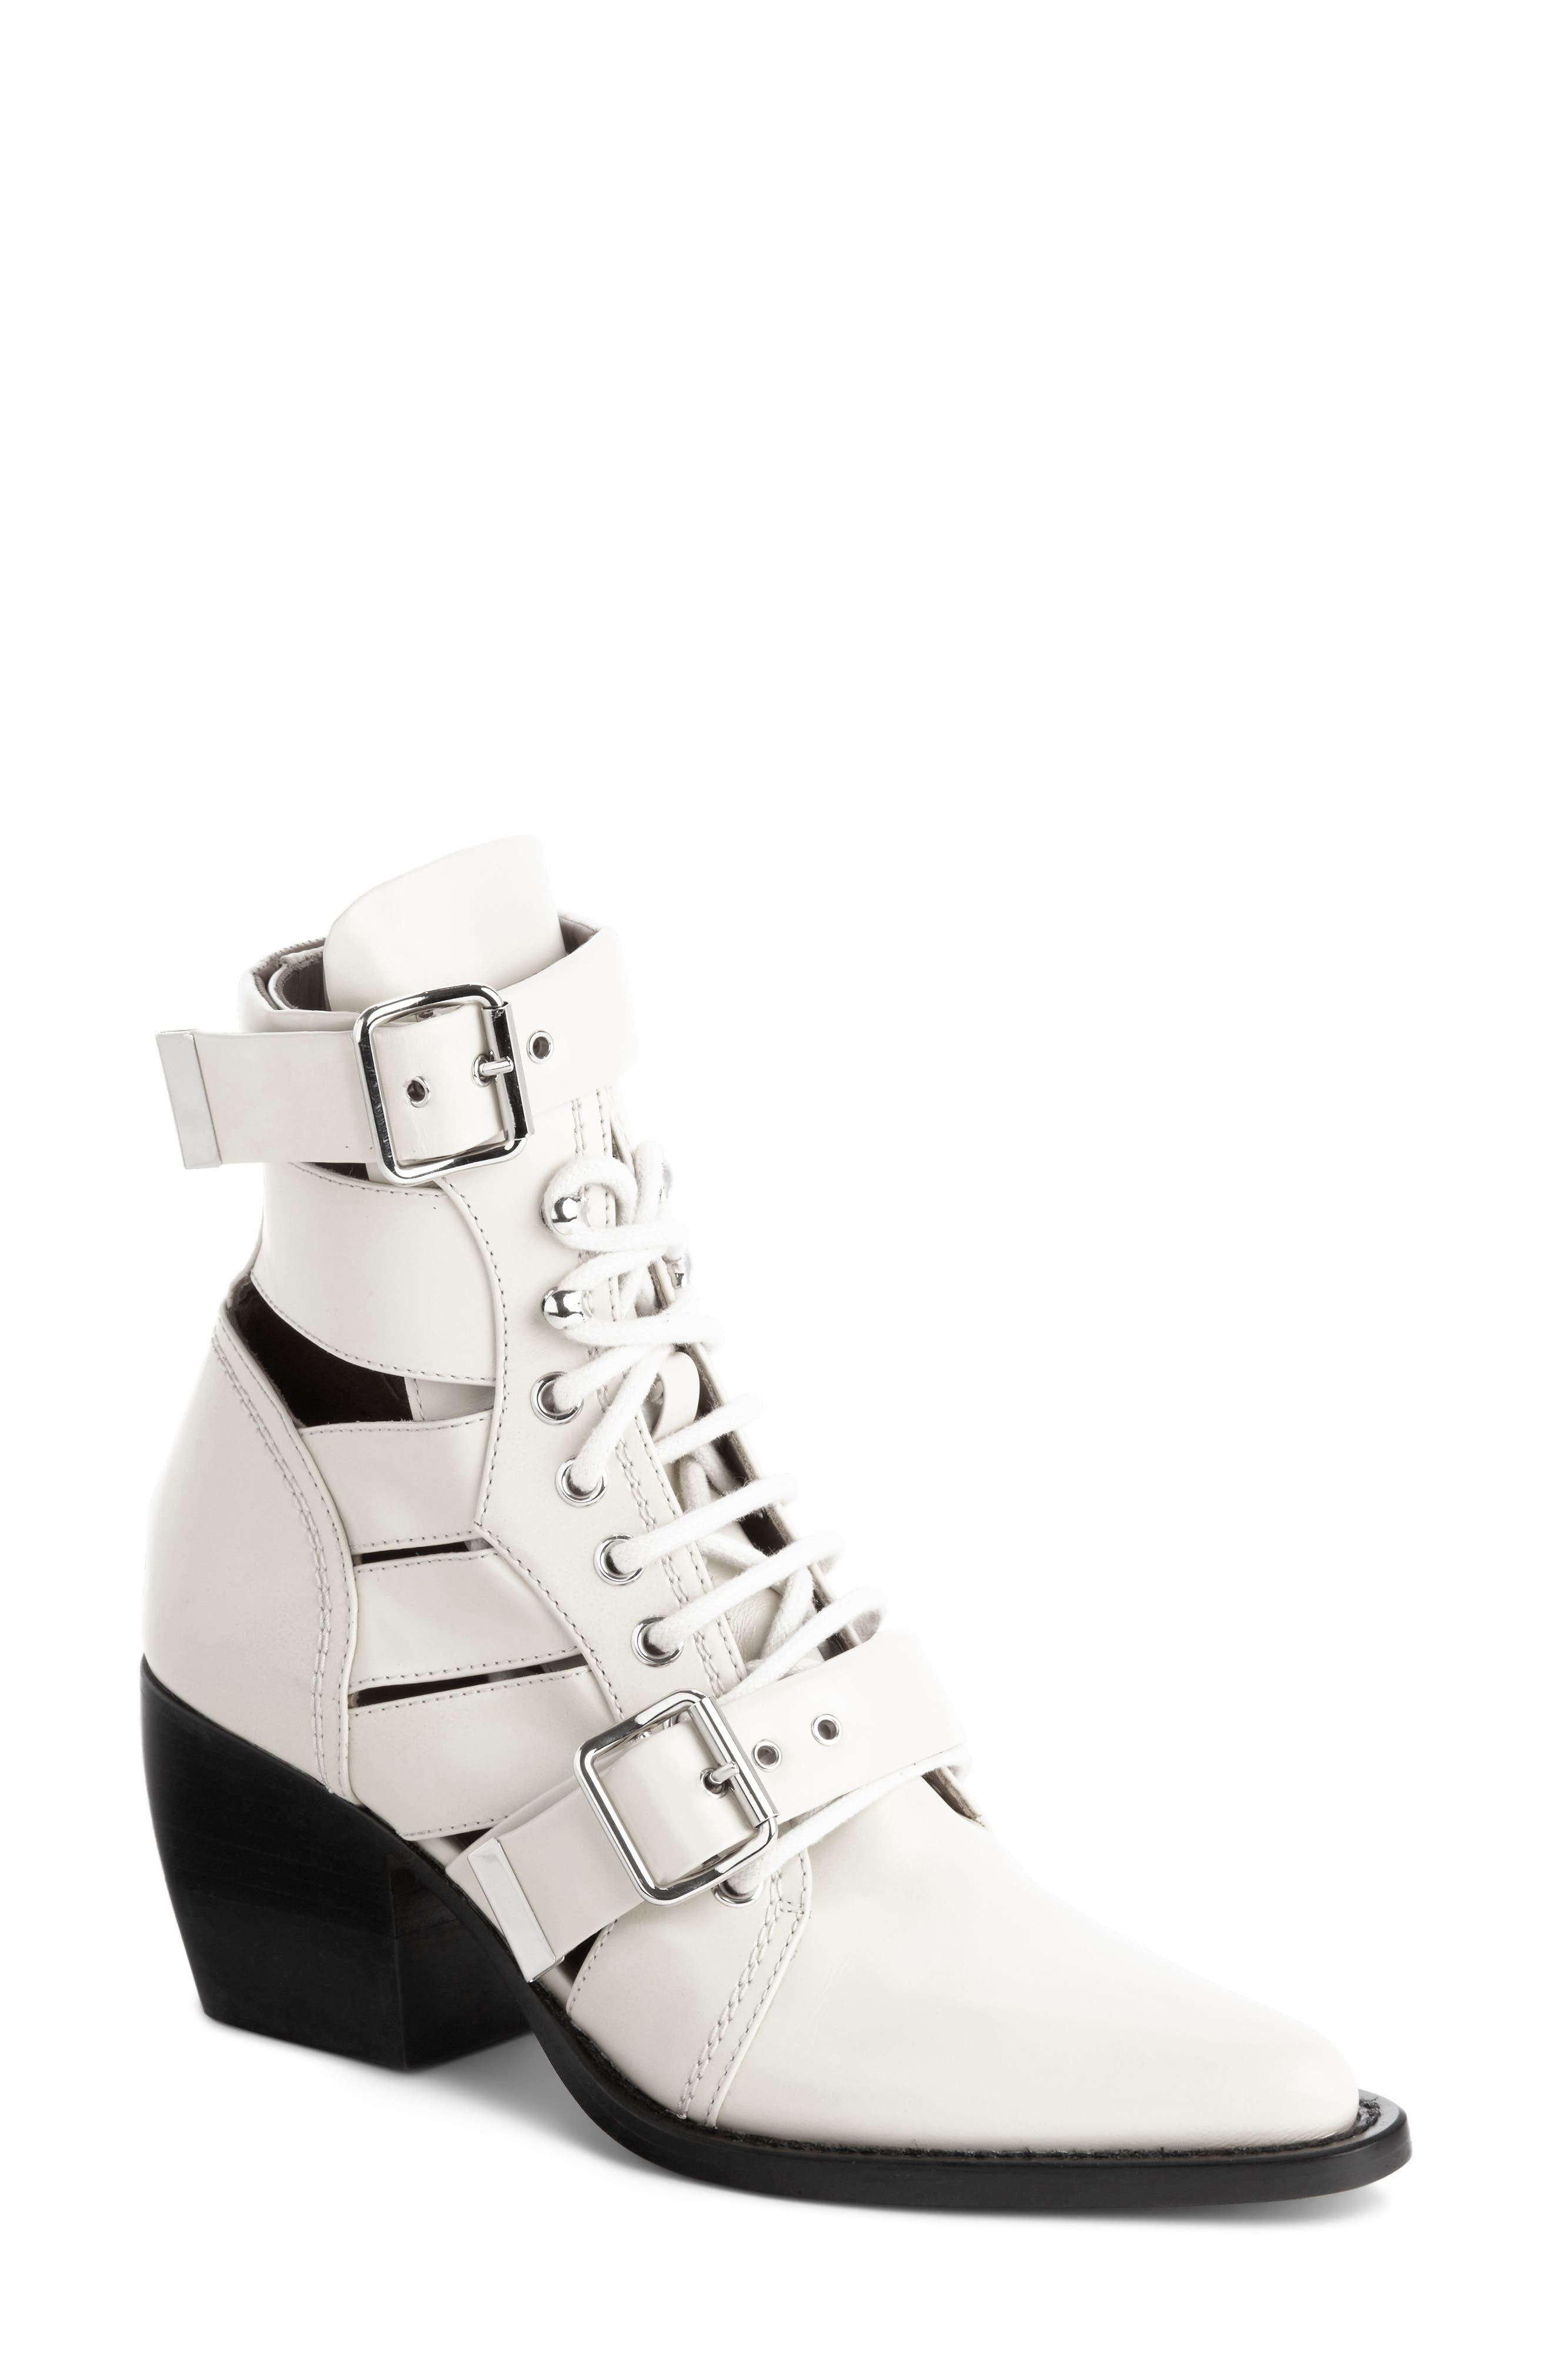 CHLOÉ Rylee Caged Pointy Toe Boot, Main, color, WHITE